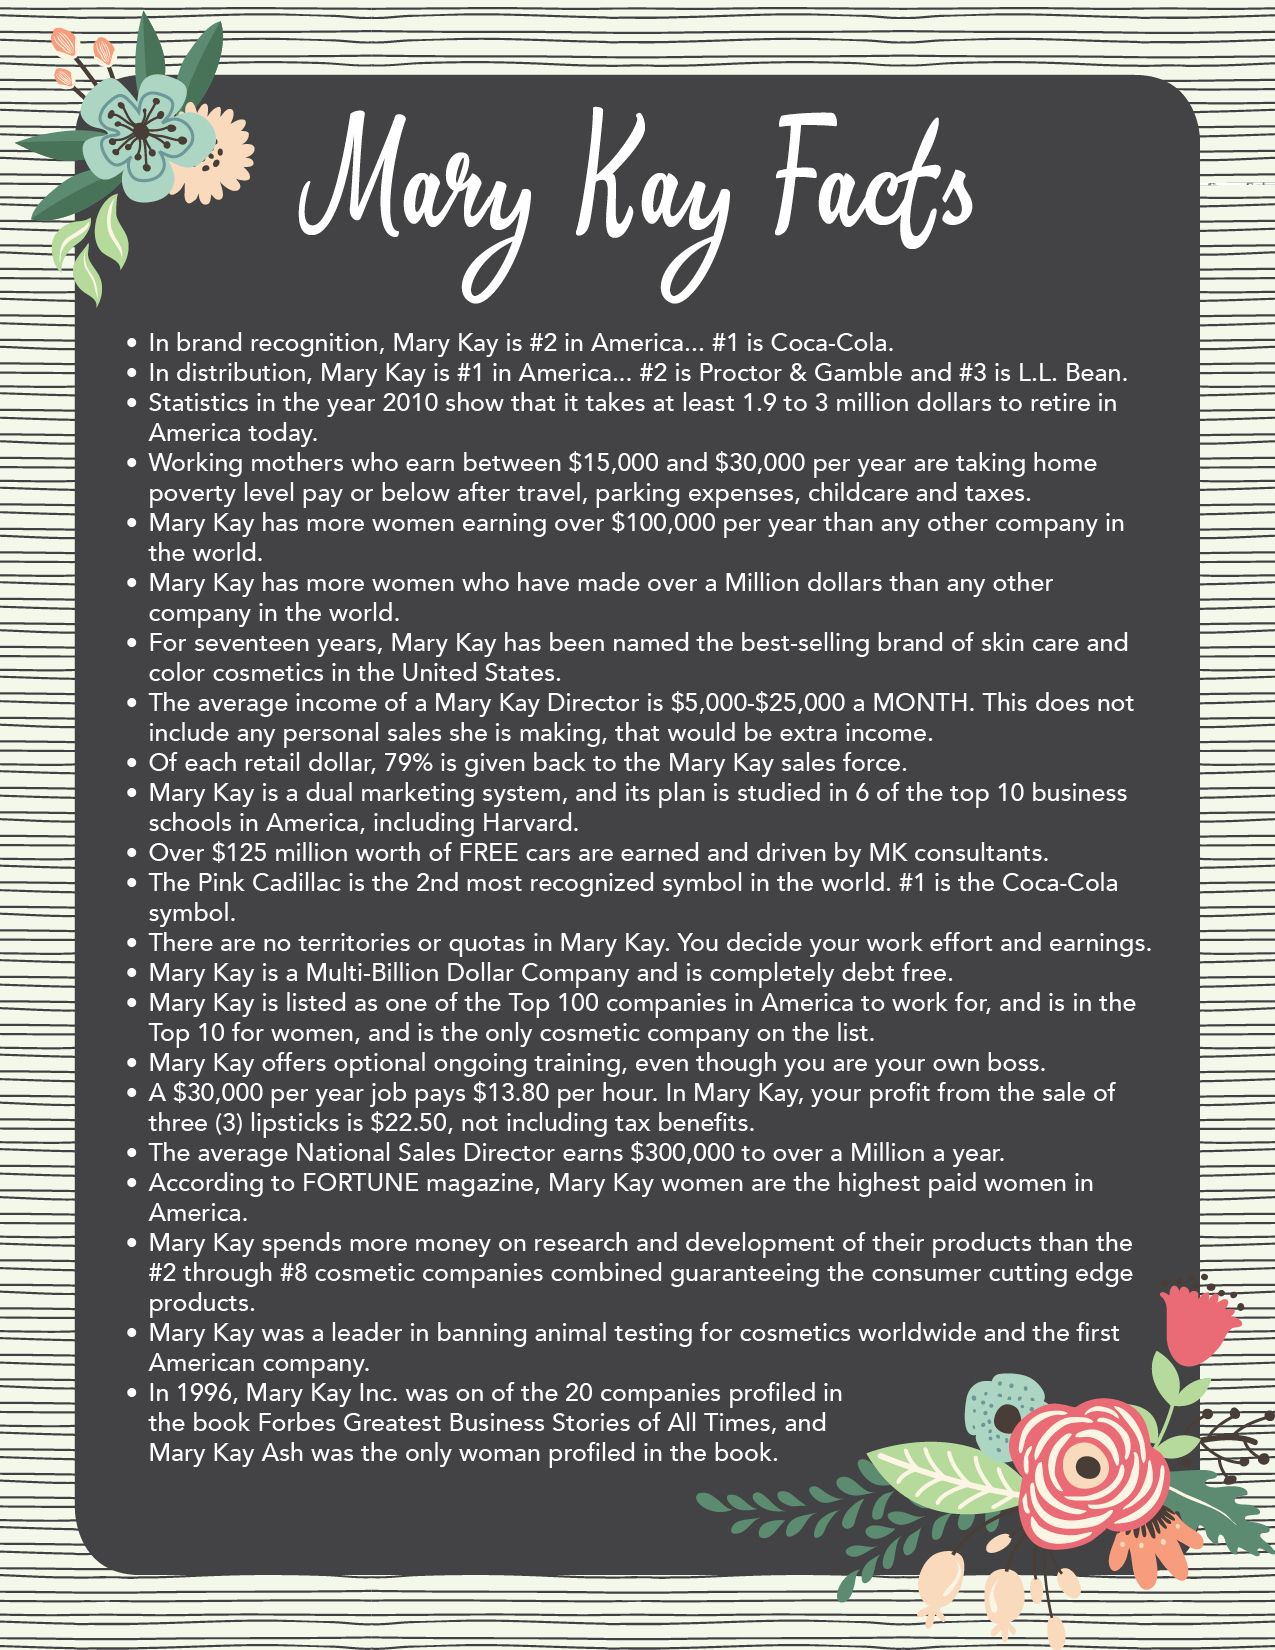 mary kay facts good to know - Google Search I love my Mary Kay www.marykay.com/brittniricker Www.facebook.com/marykaybrittniricker